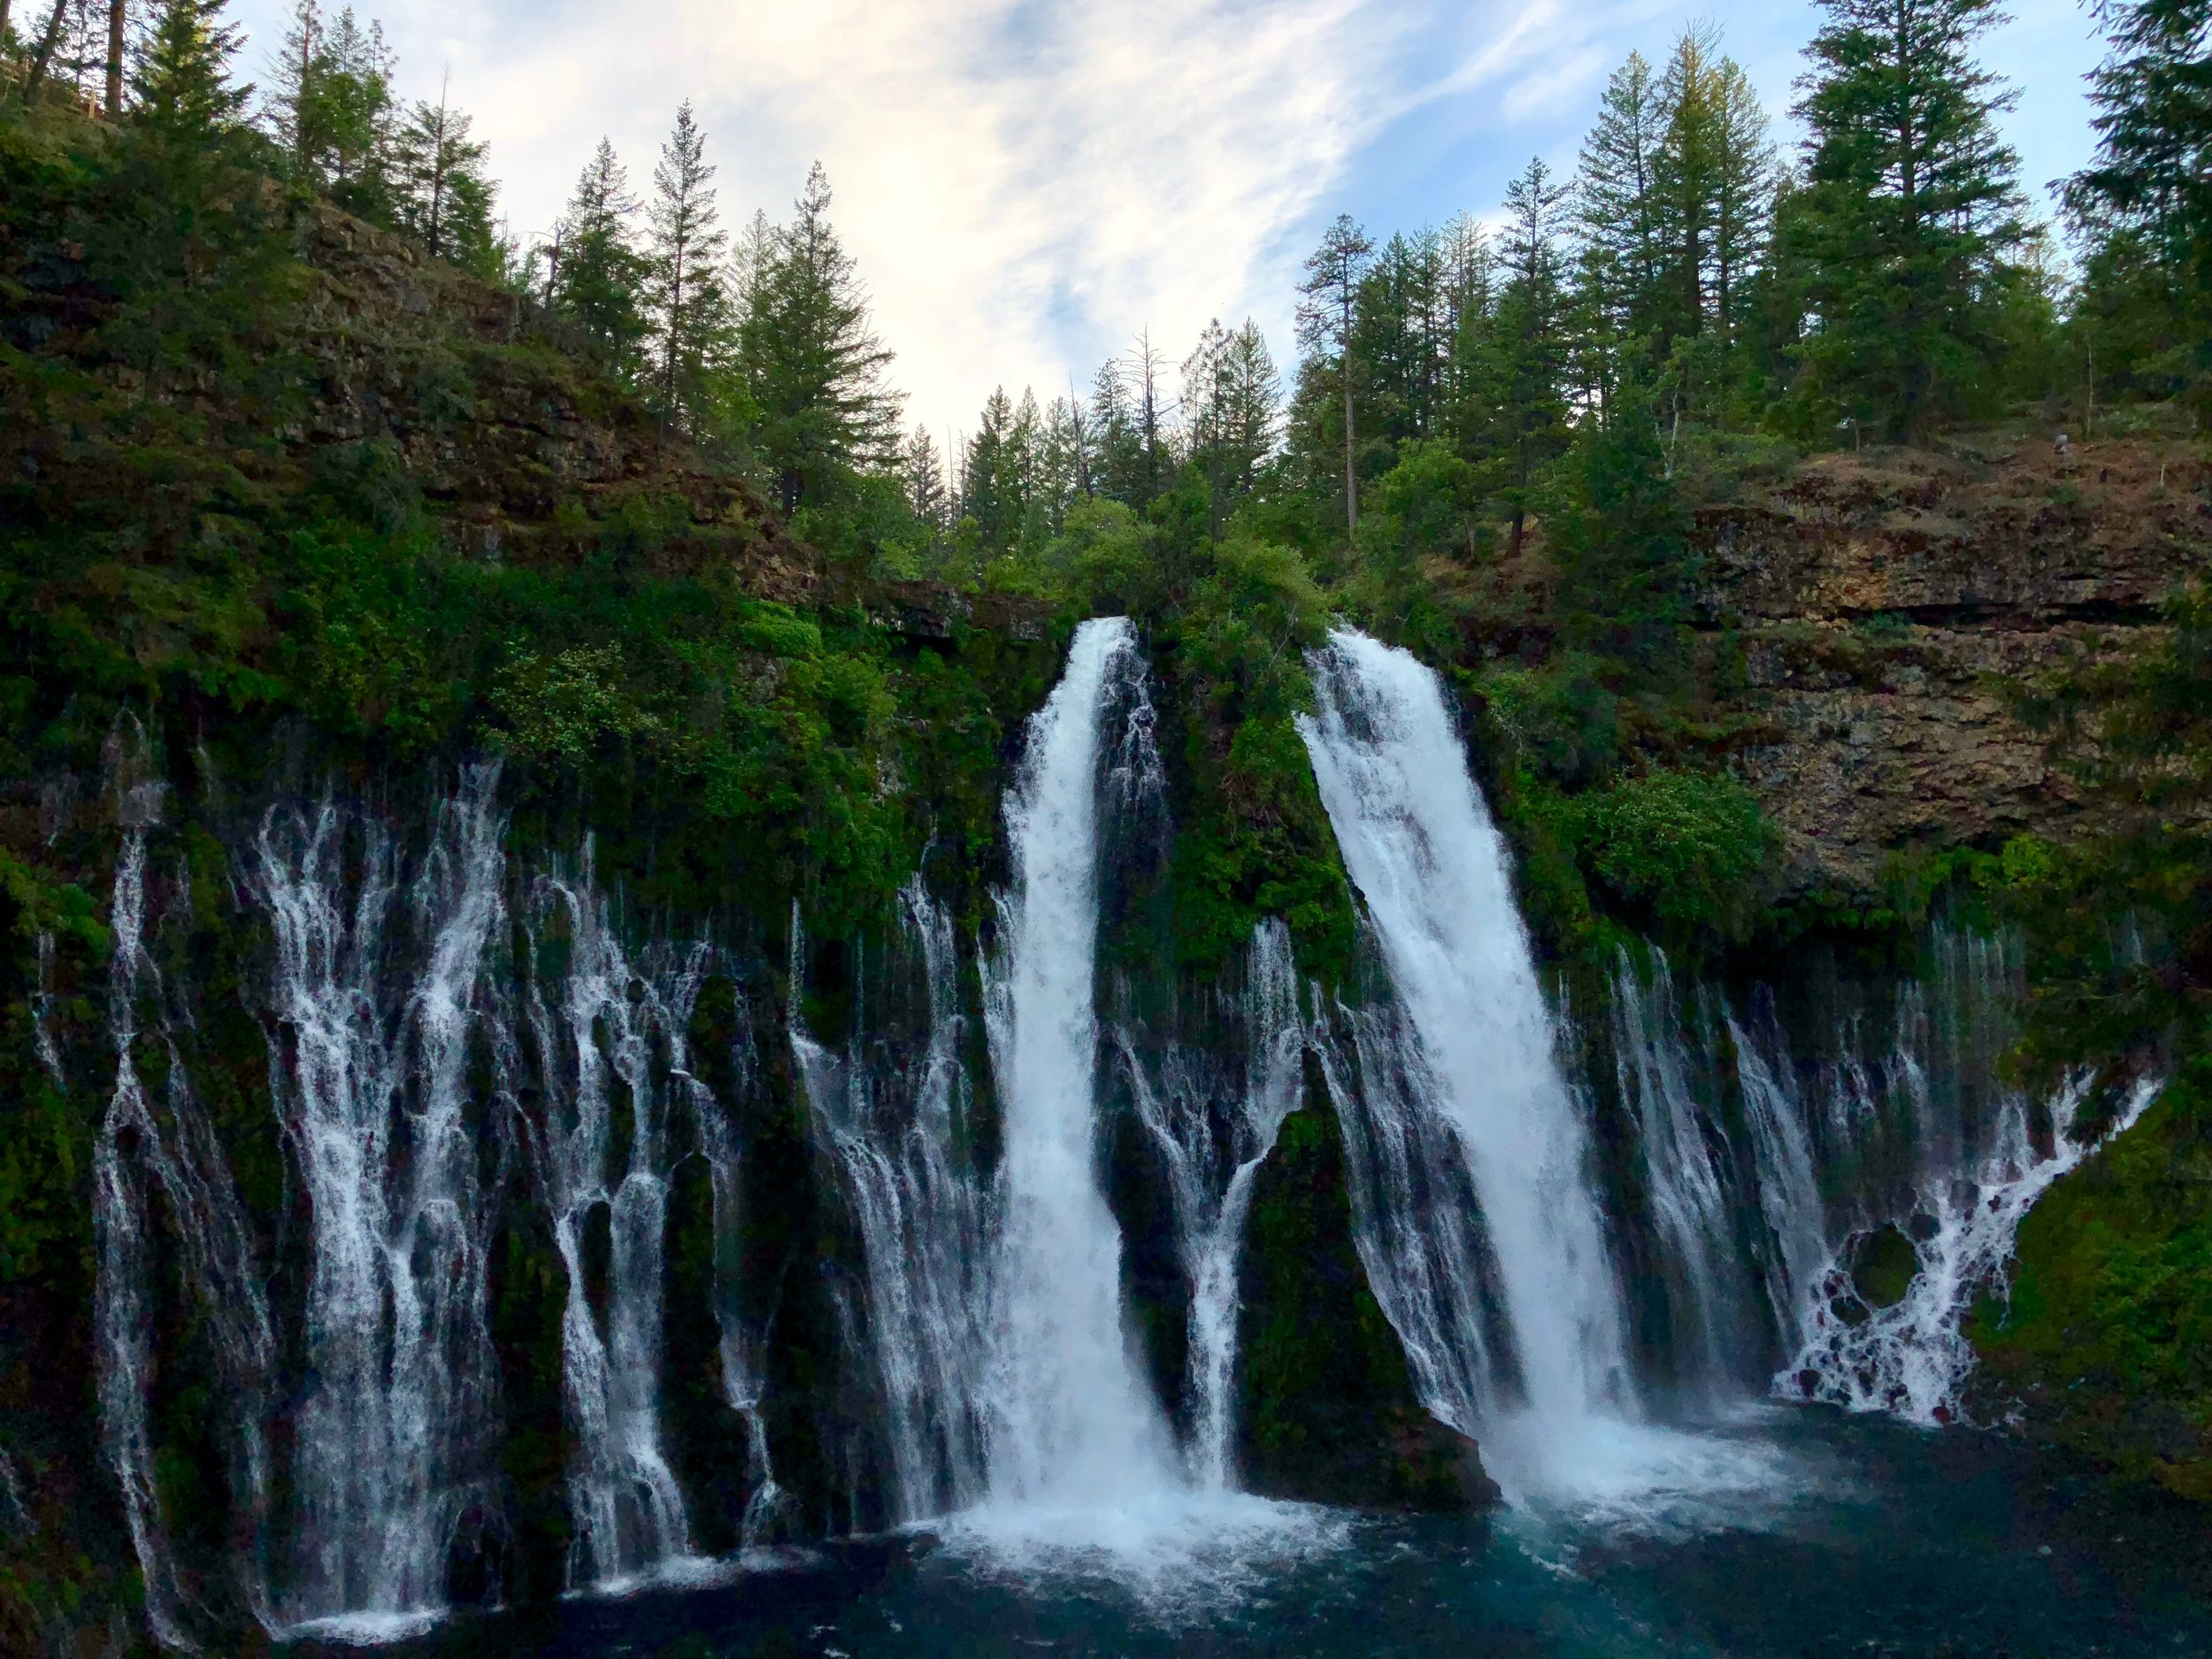 McArthur Burney State Park - just over one hour from Redding, CA.